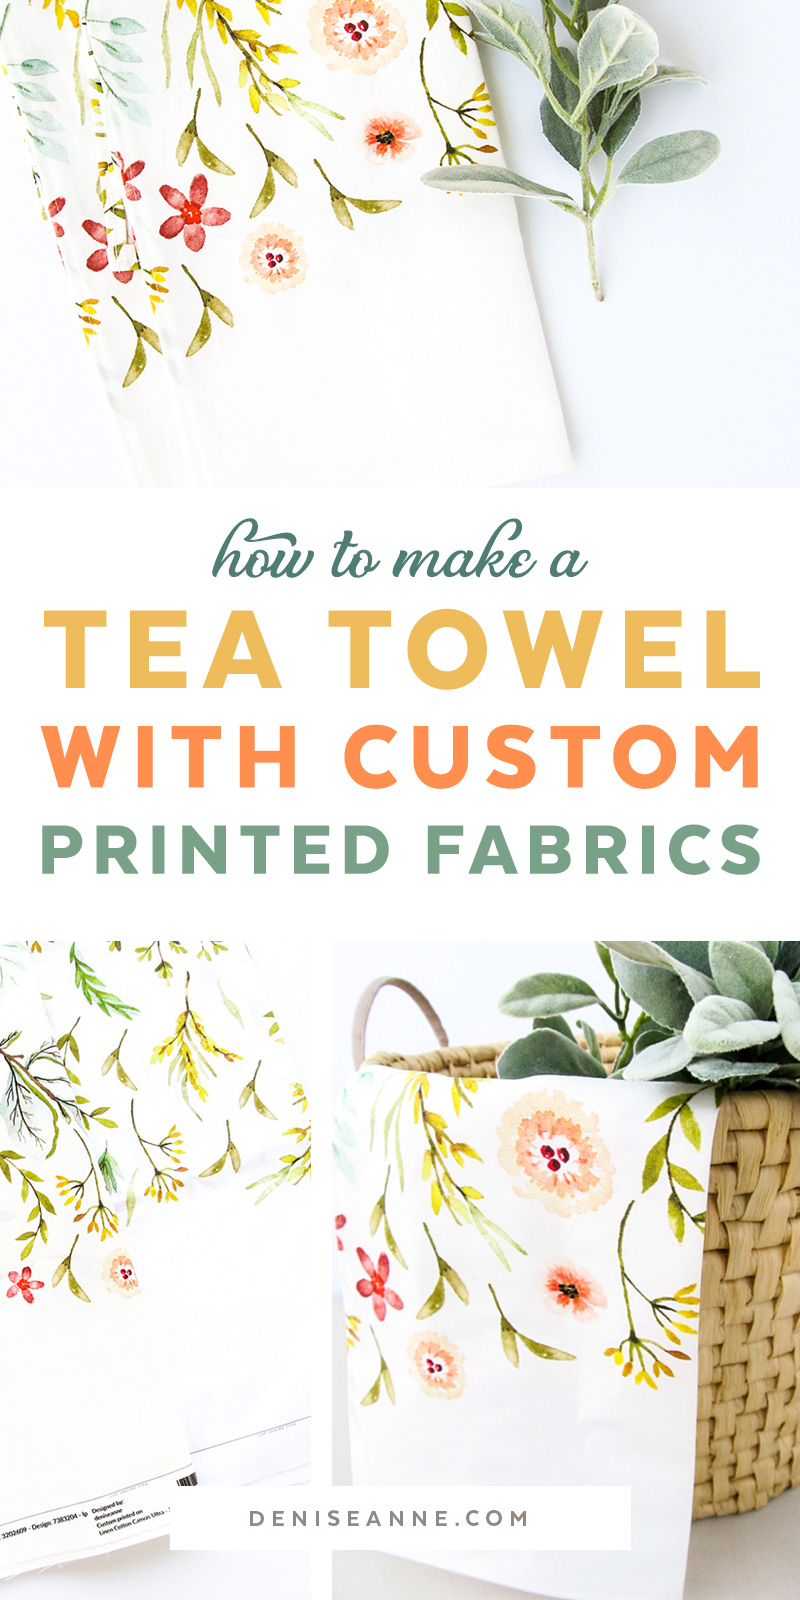 Making tea towels with custom printed fabrics, botancial wildflower kitchen towels.